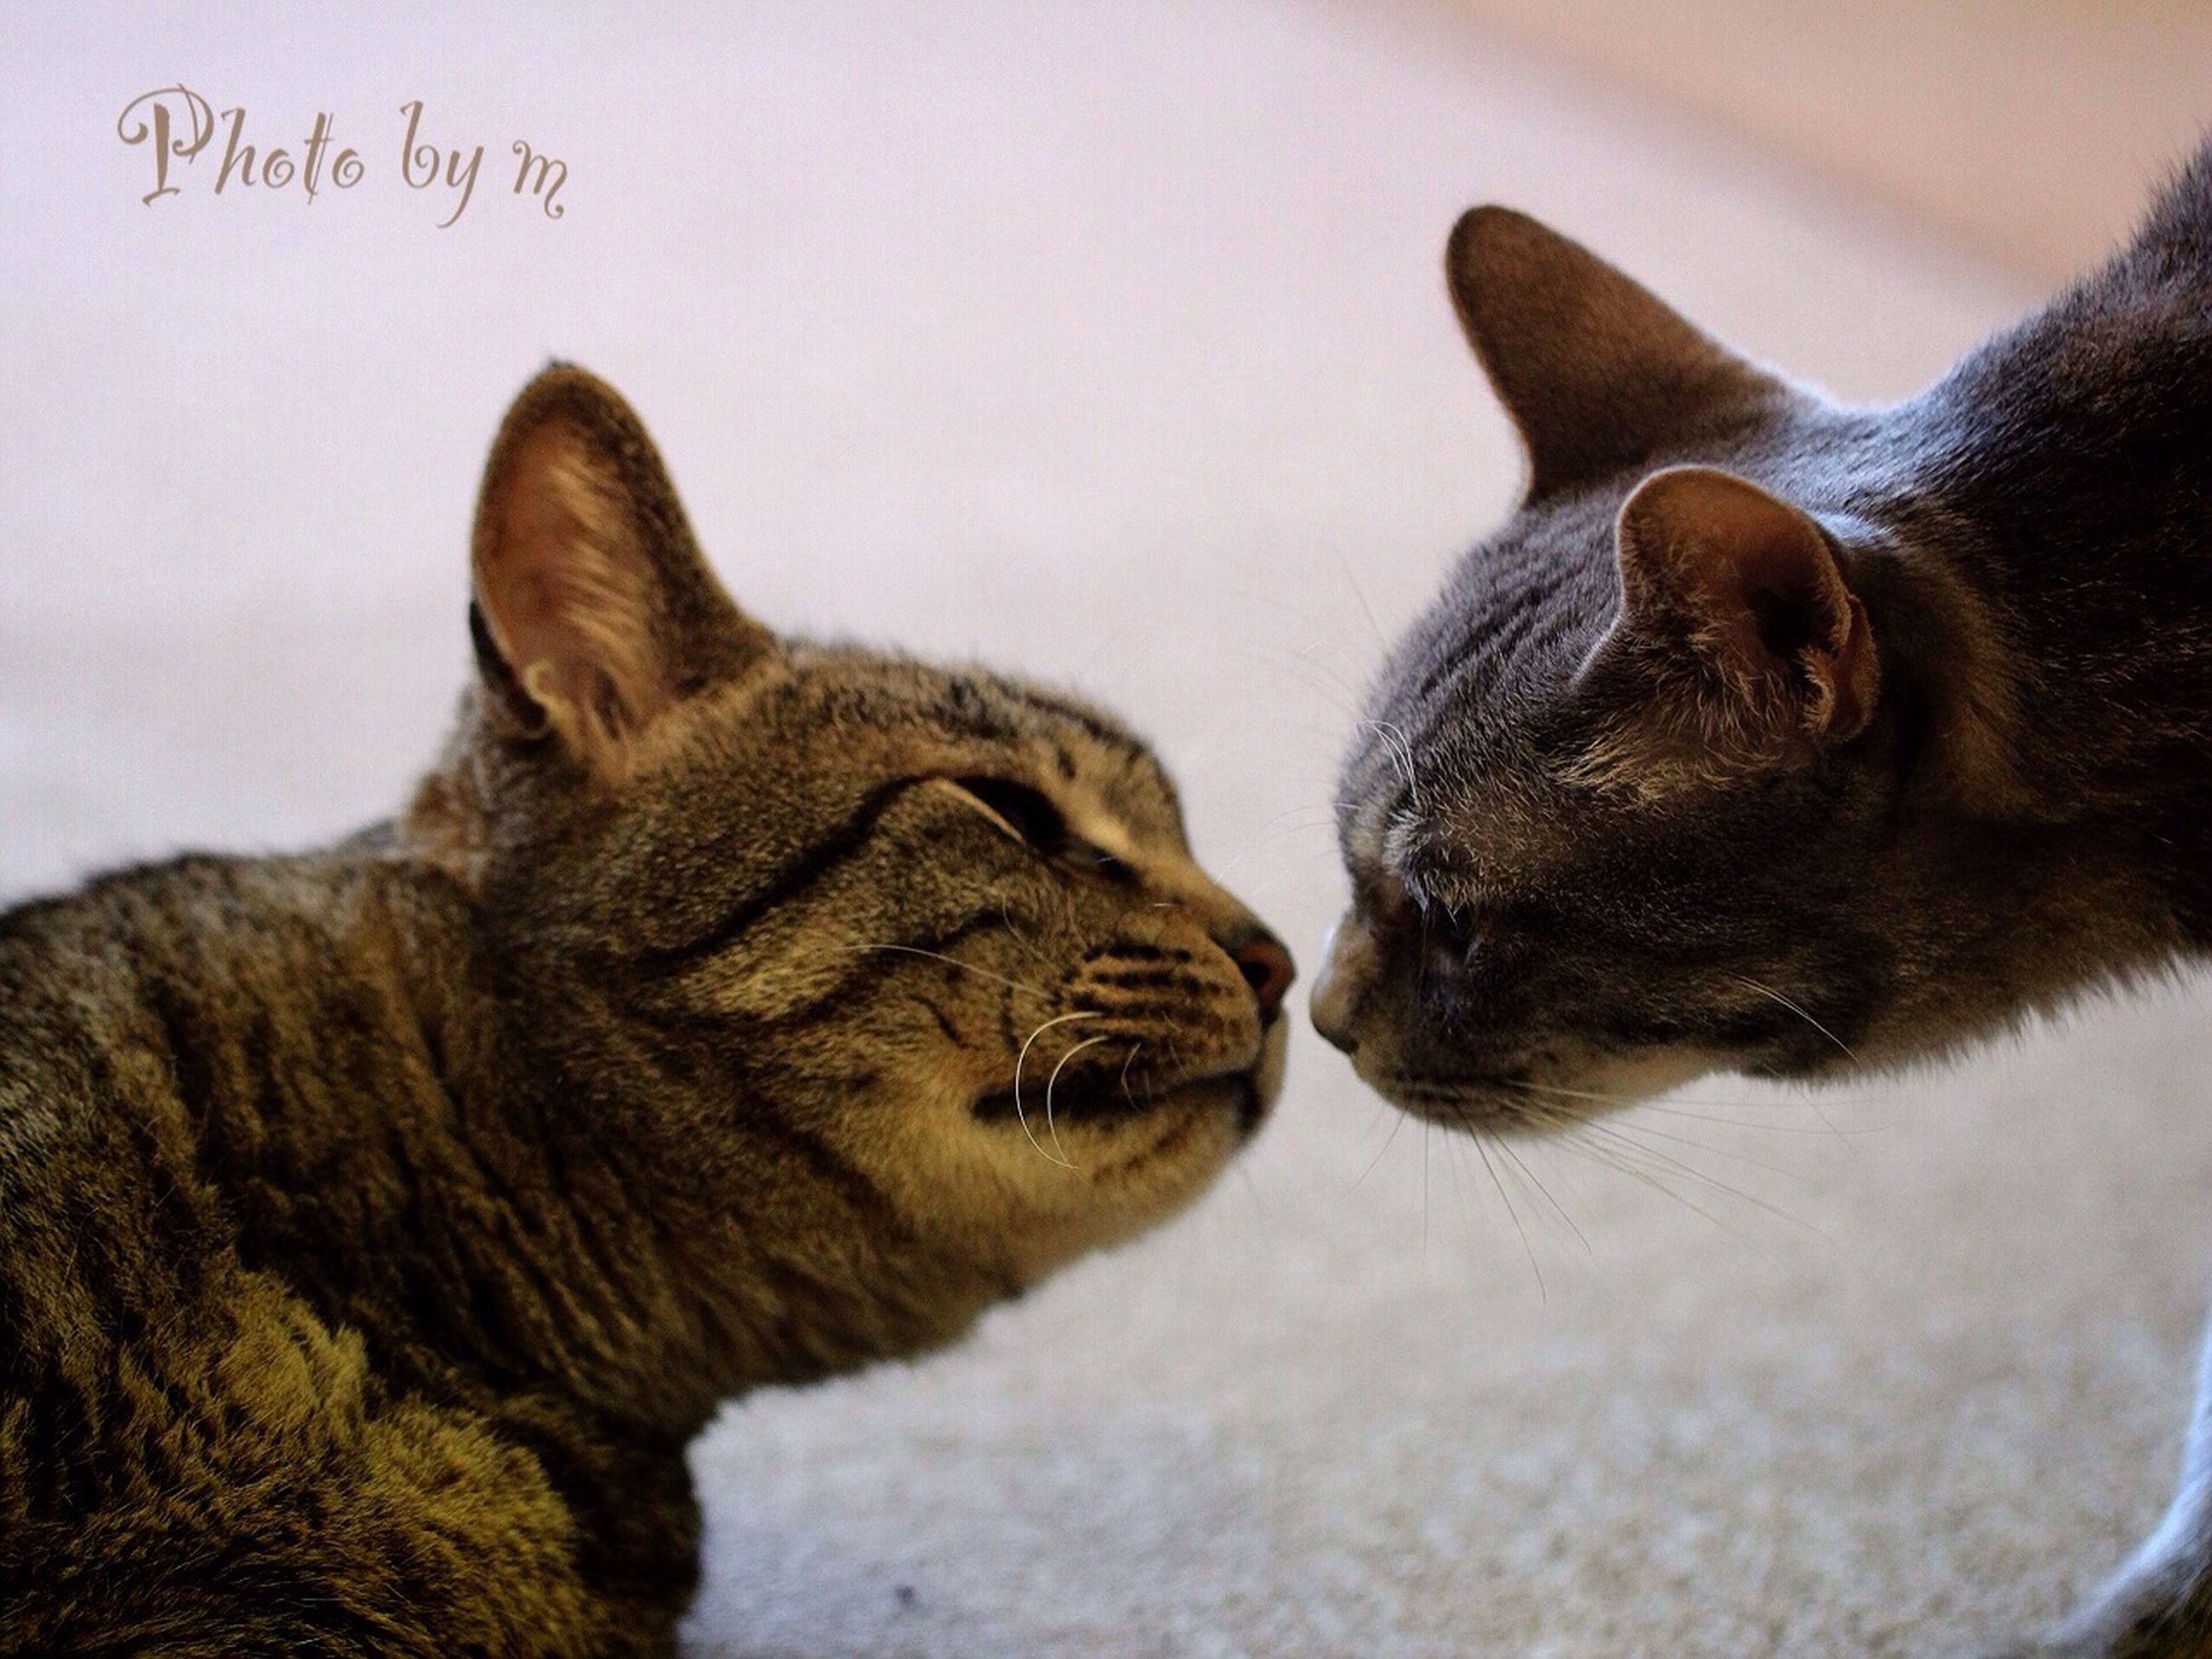 animal themes, mammal, one animal, domestic animals, pets, domestic cat, feline, cat, relaxation, whisker, lying down, close-up, resting, two animals, sleeping, indoors, animal head, focus on foreground, eyes closed, zoology